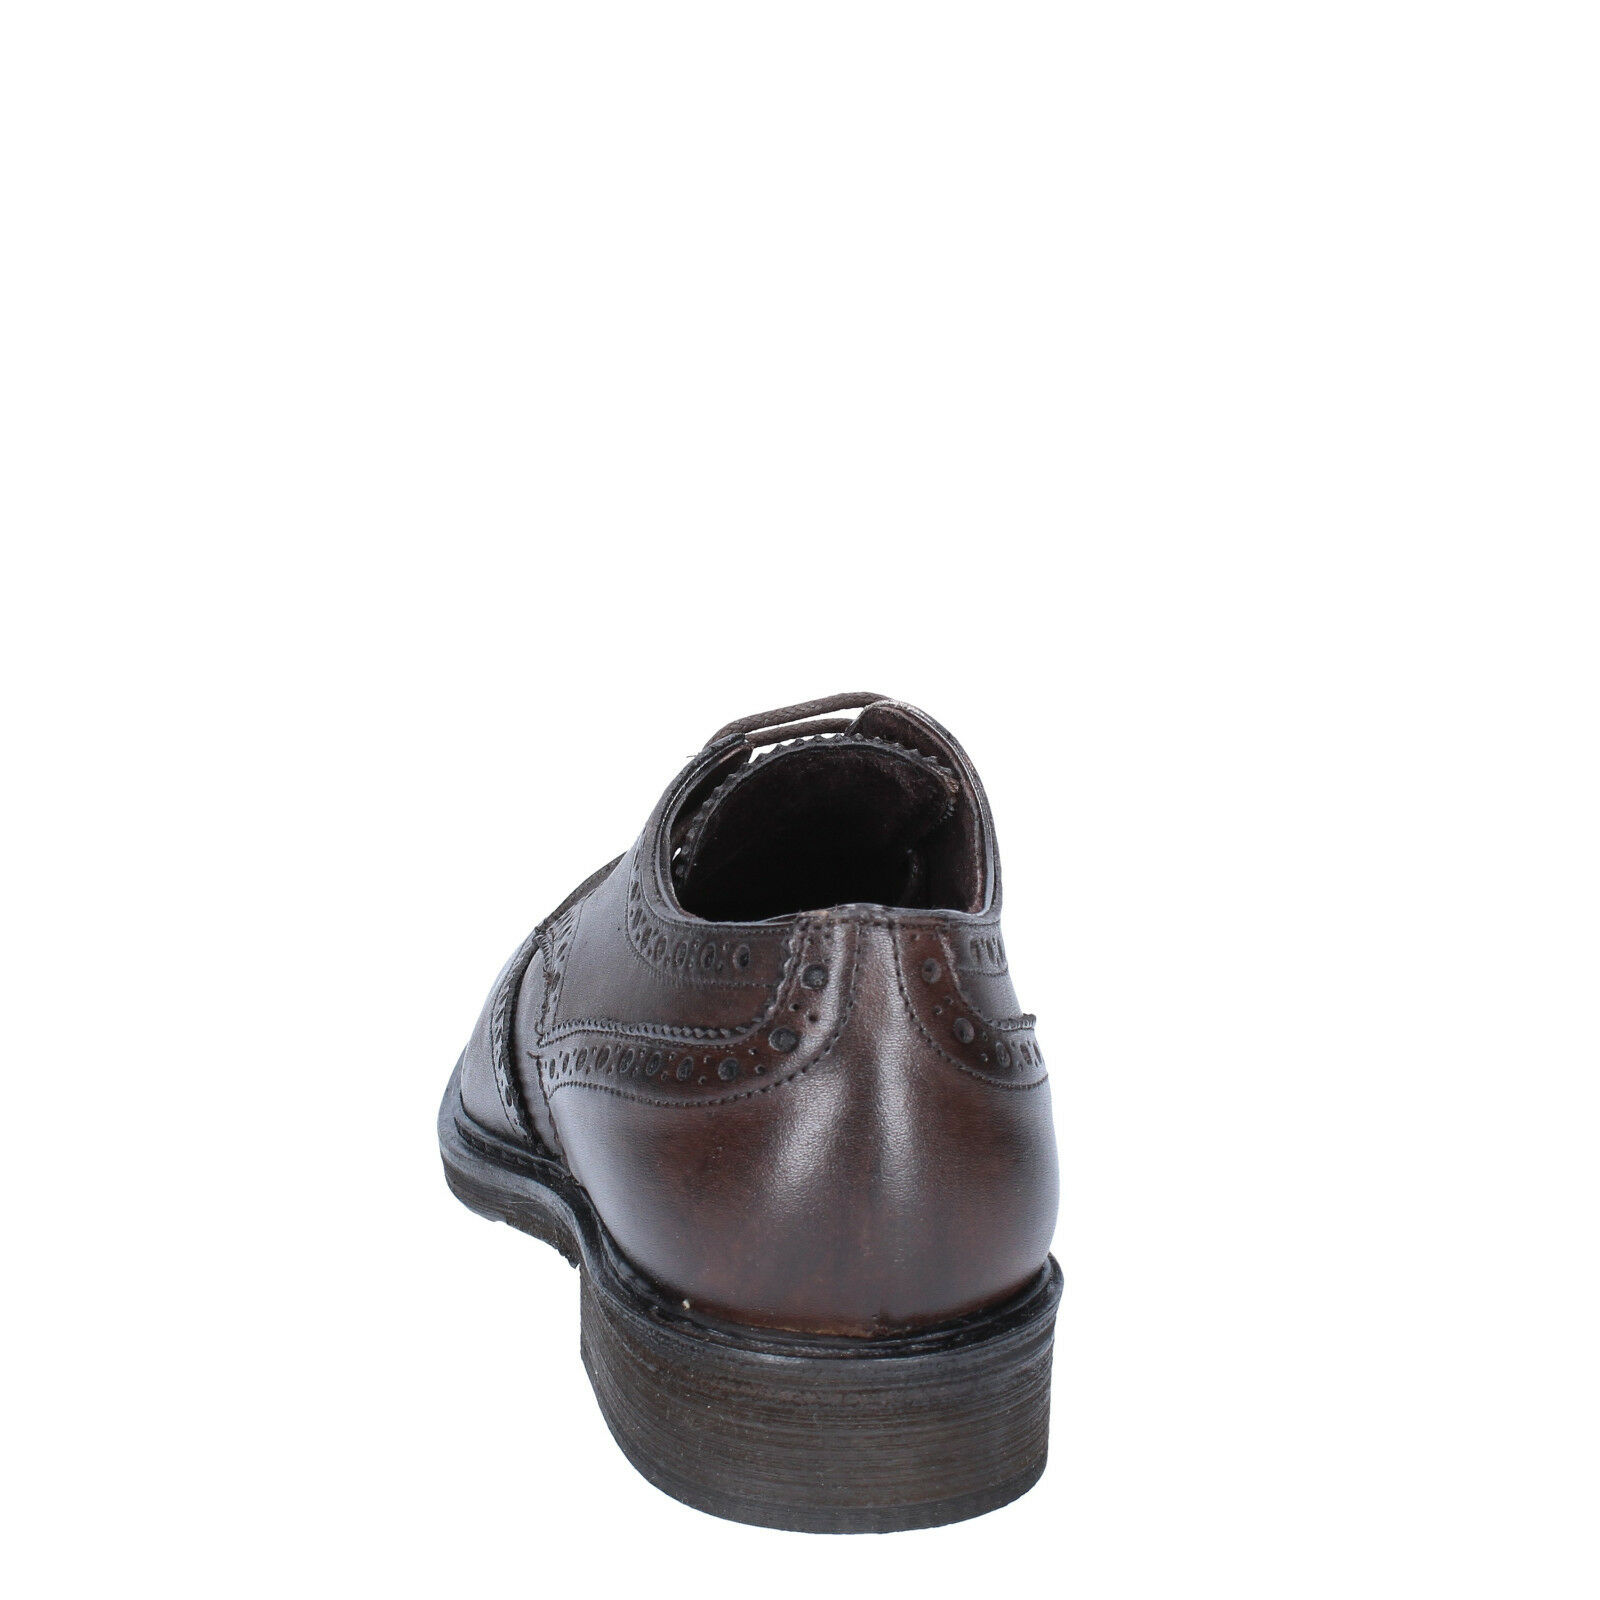 Uomo shoes shoes Uomo CESARE MAURIZI 5 (EU 39) elegant brown leather BX505-39 fe4e8a